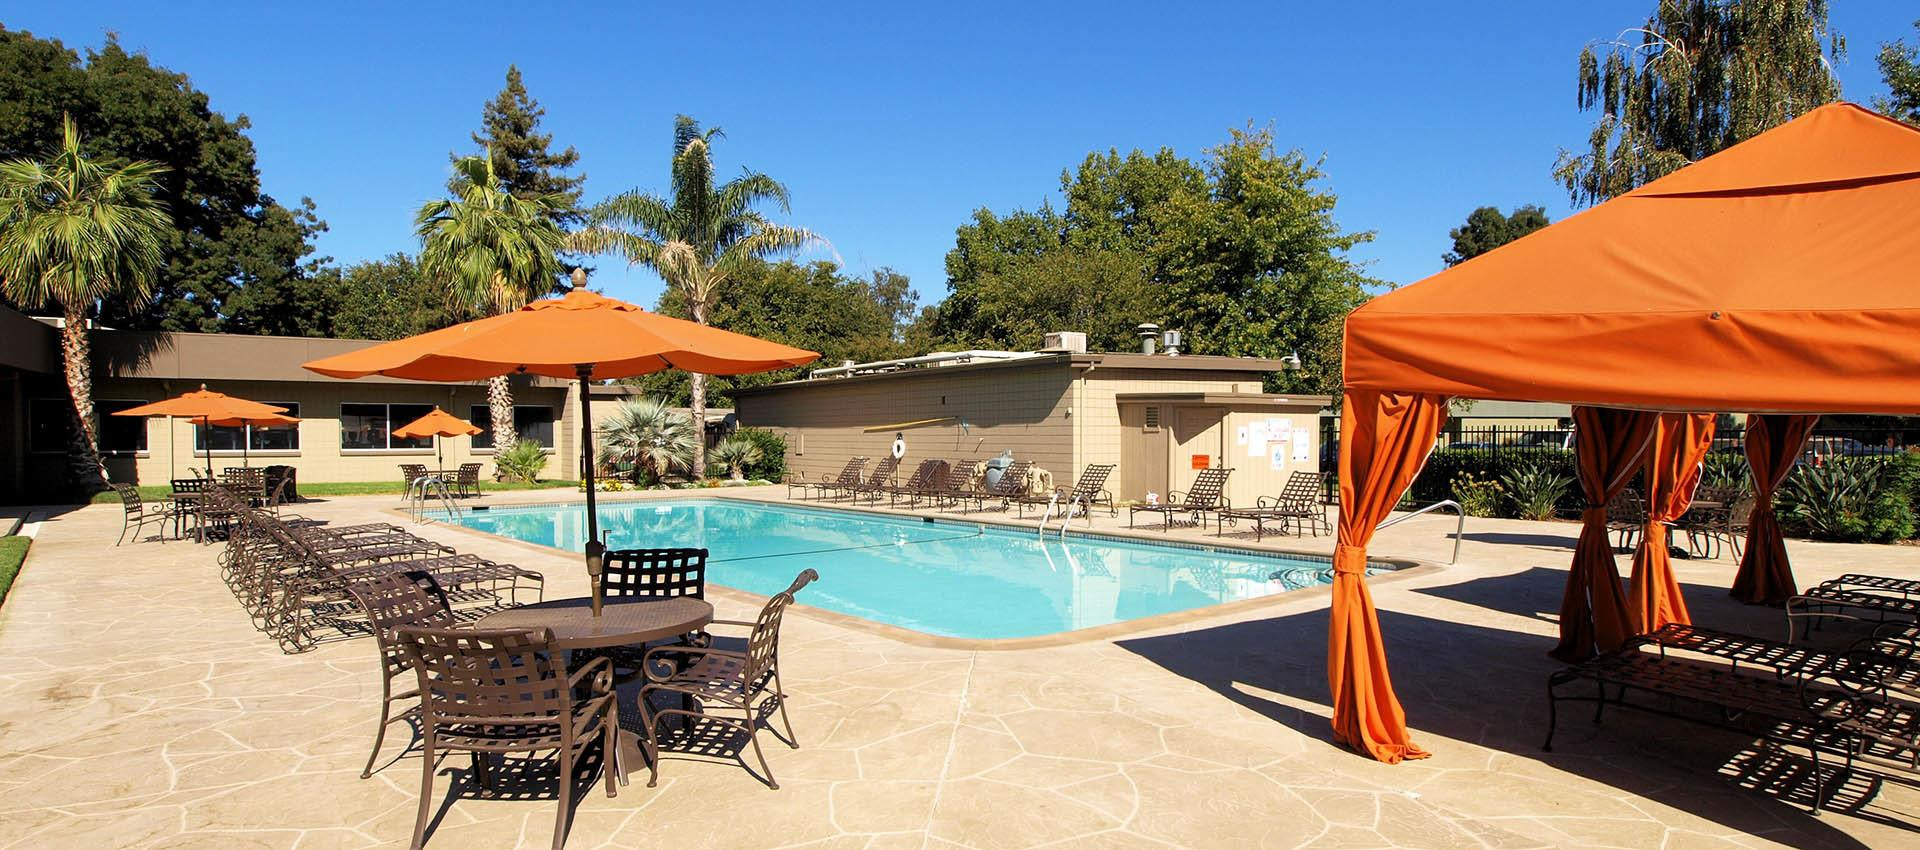 Learn about our neighborhood at Craig Student Living in Chico, CA on our website